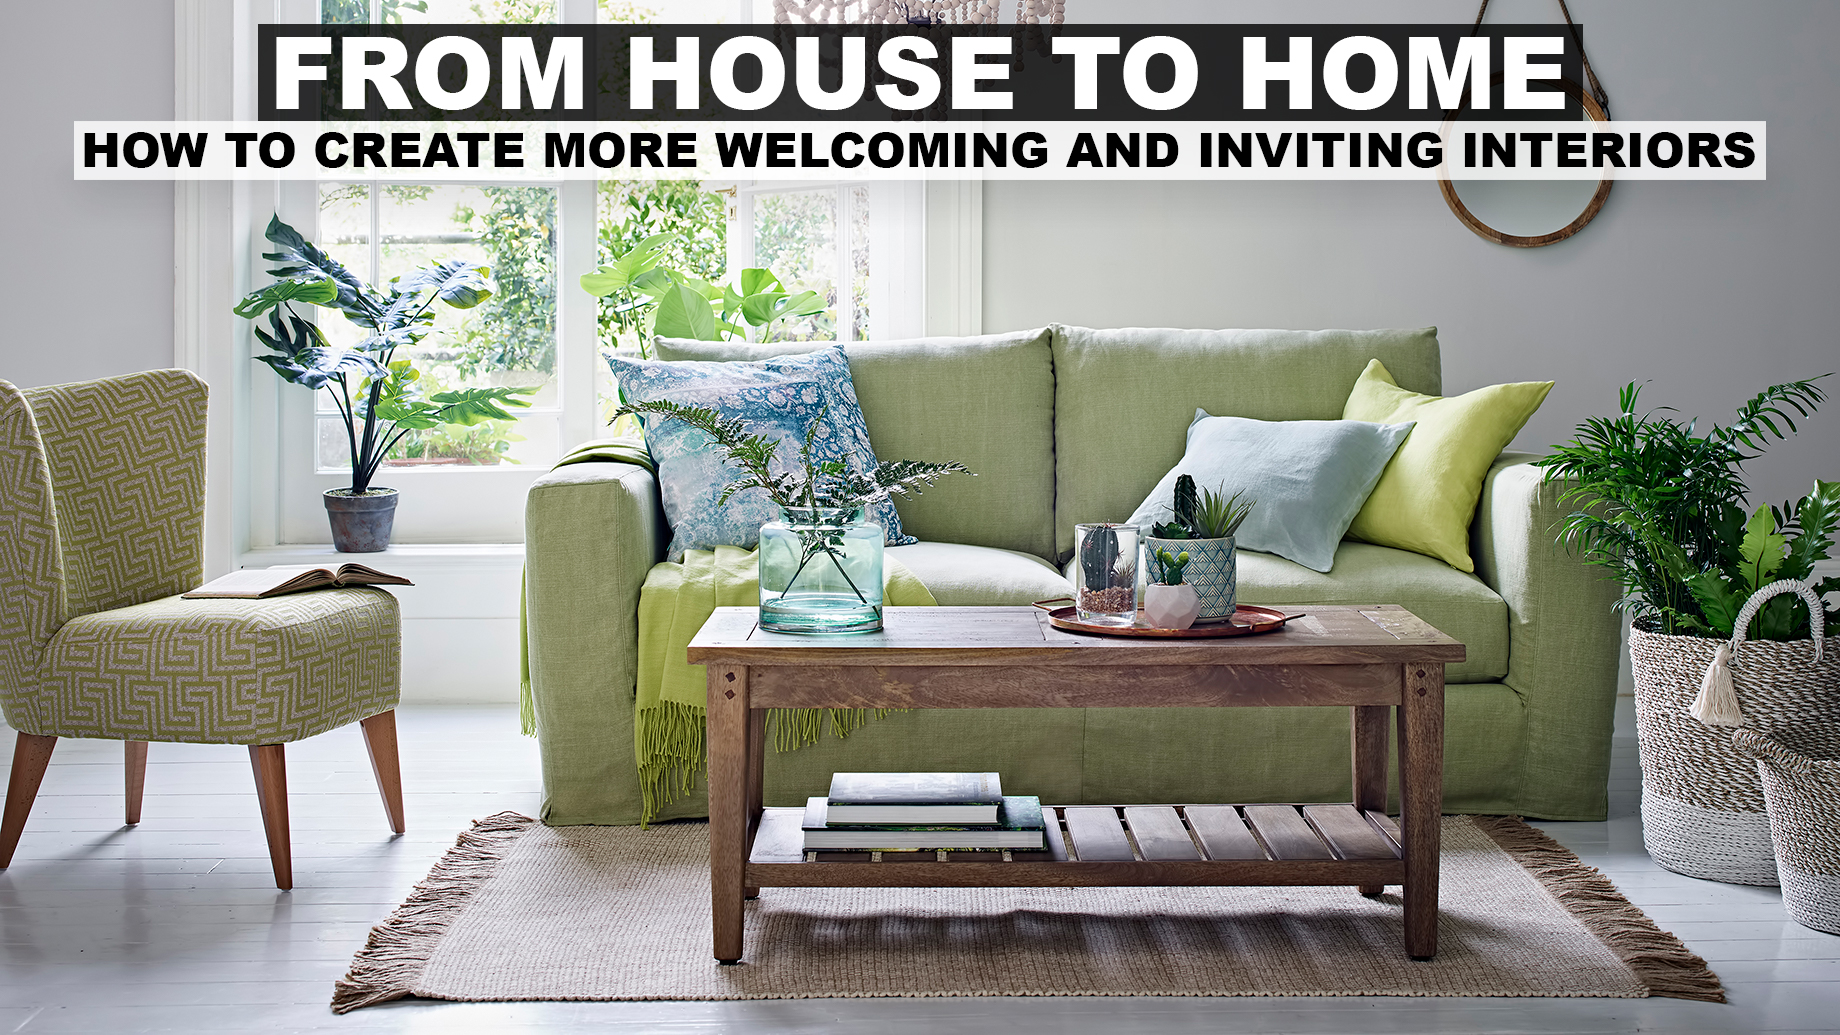 From House to Home - How to Create More Welcoming and Inviting Interiors